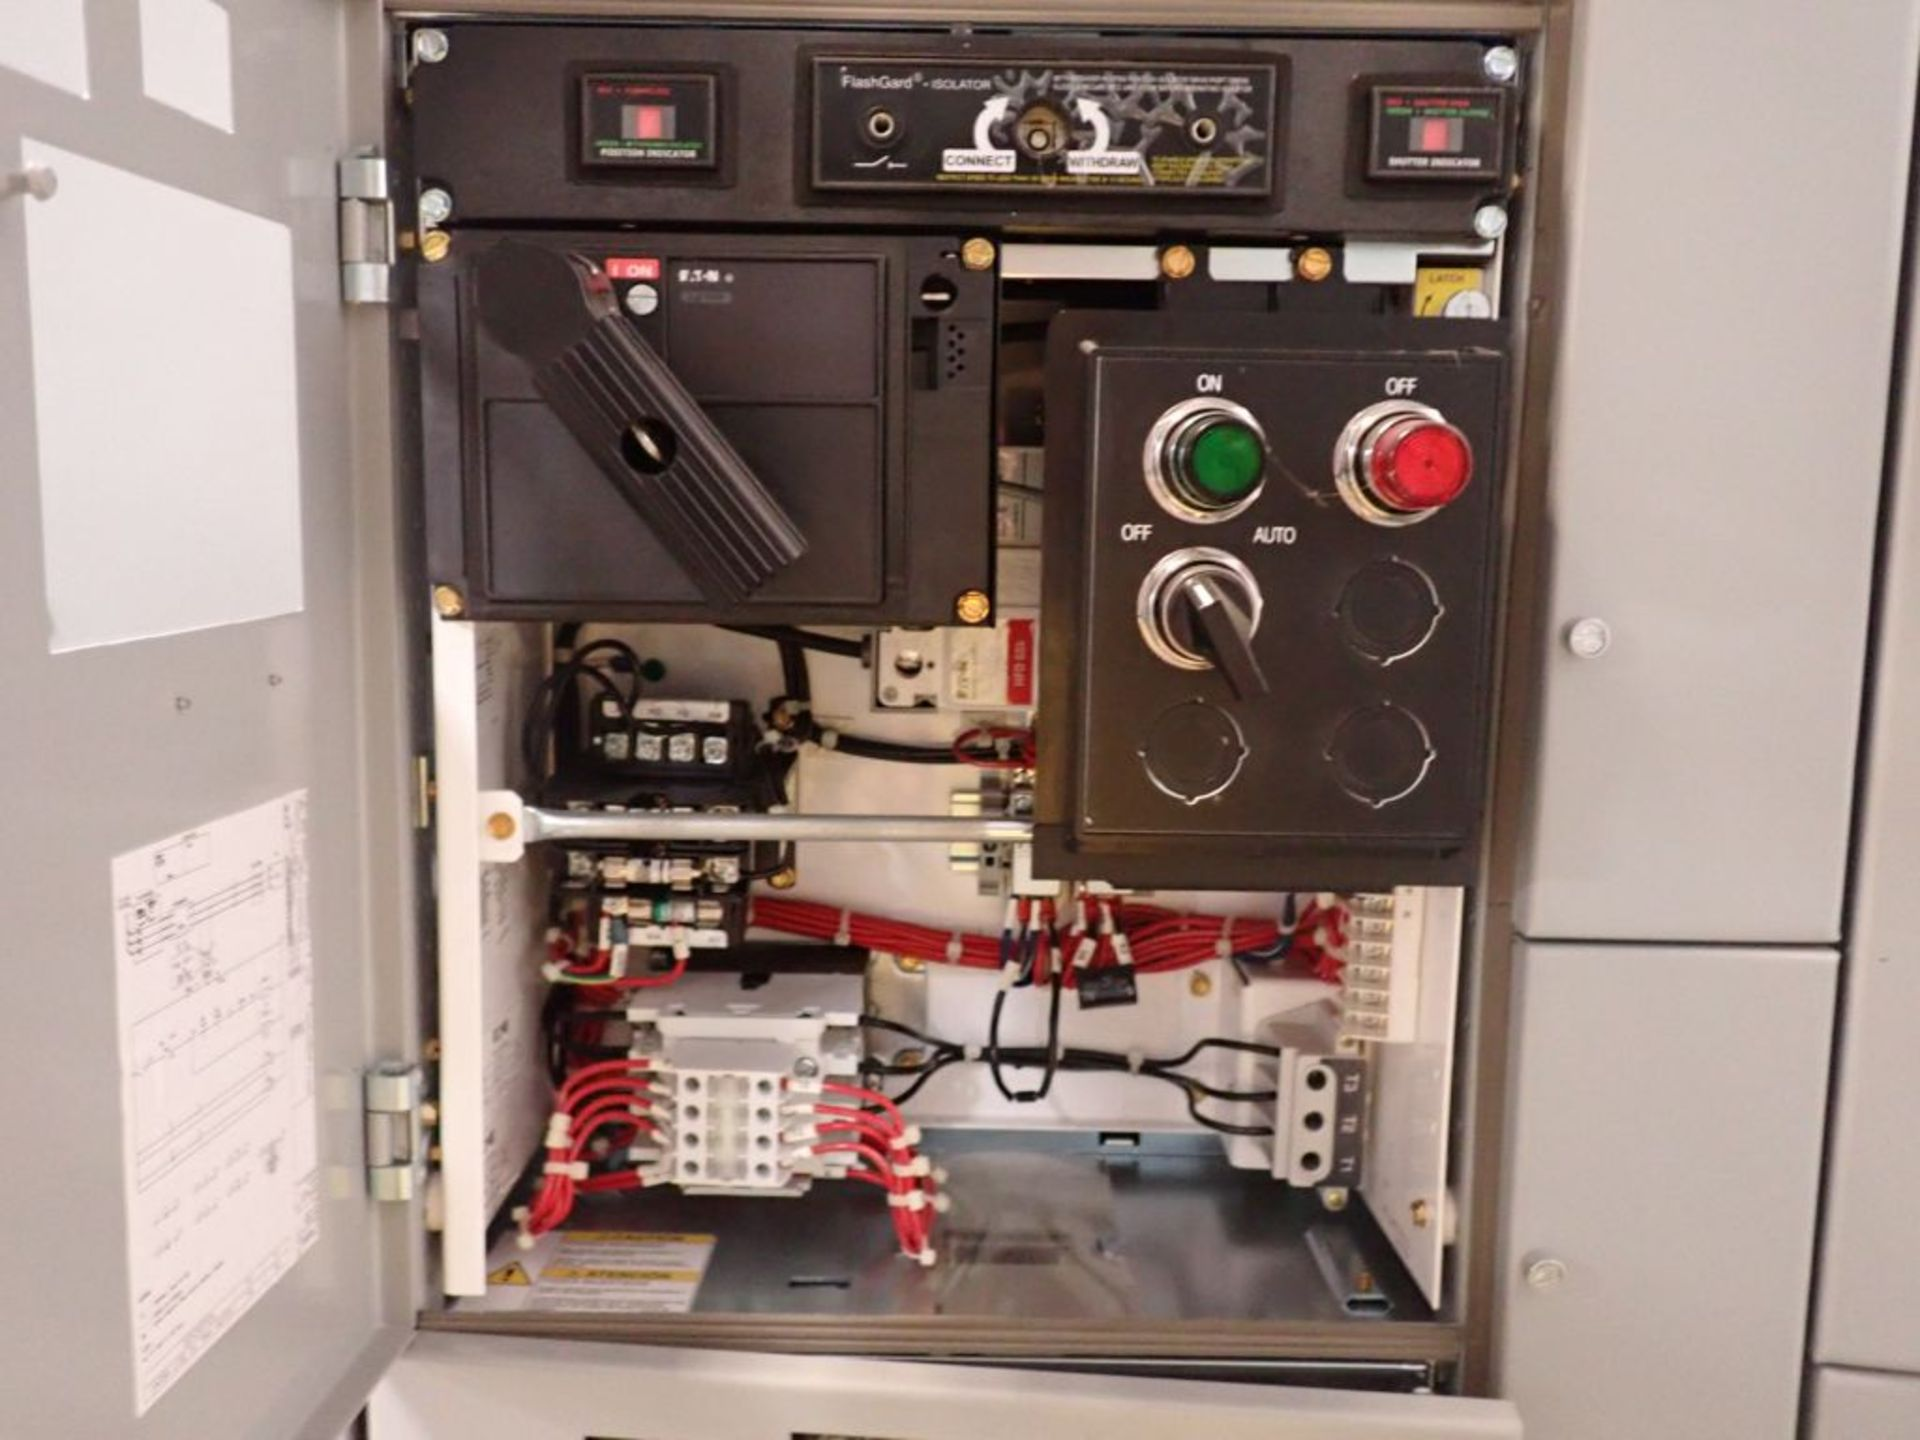 Eaton Freedom 2100 Series Motor Control Center | (2) F206-15A-10HP; (1) FDRB-250A; (1) FDRB-400A; ( - Image 64 of 104